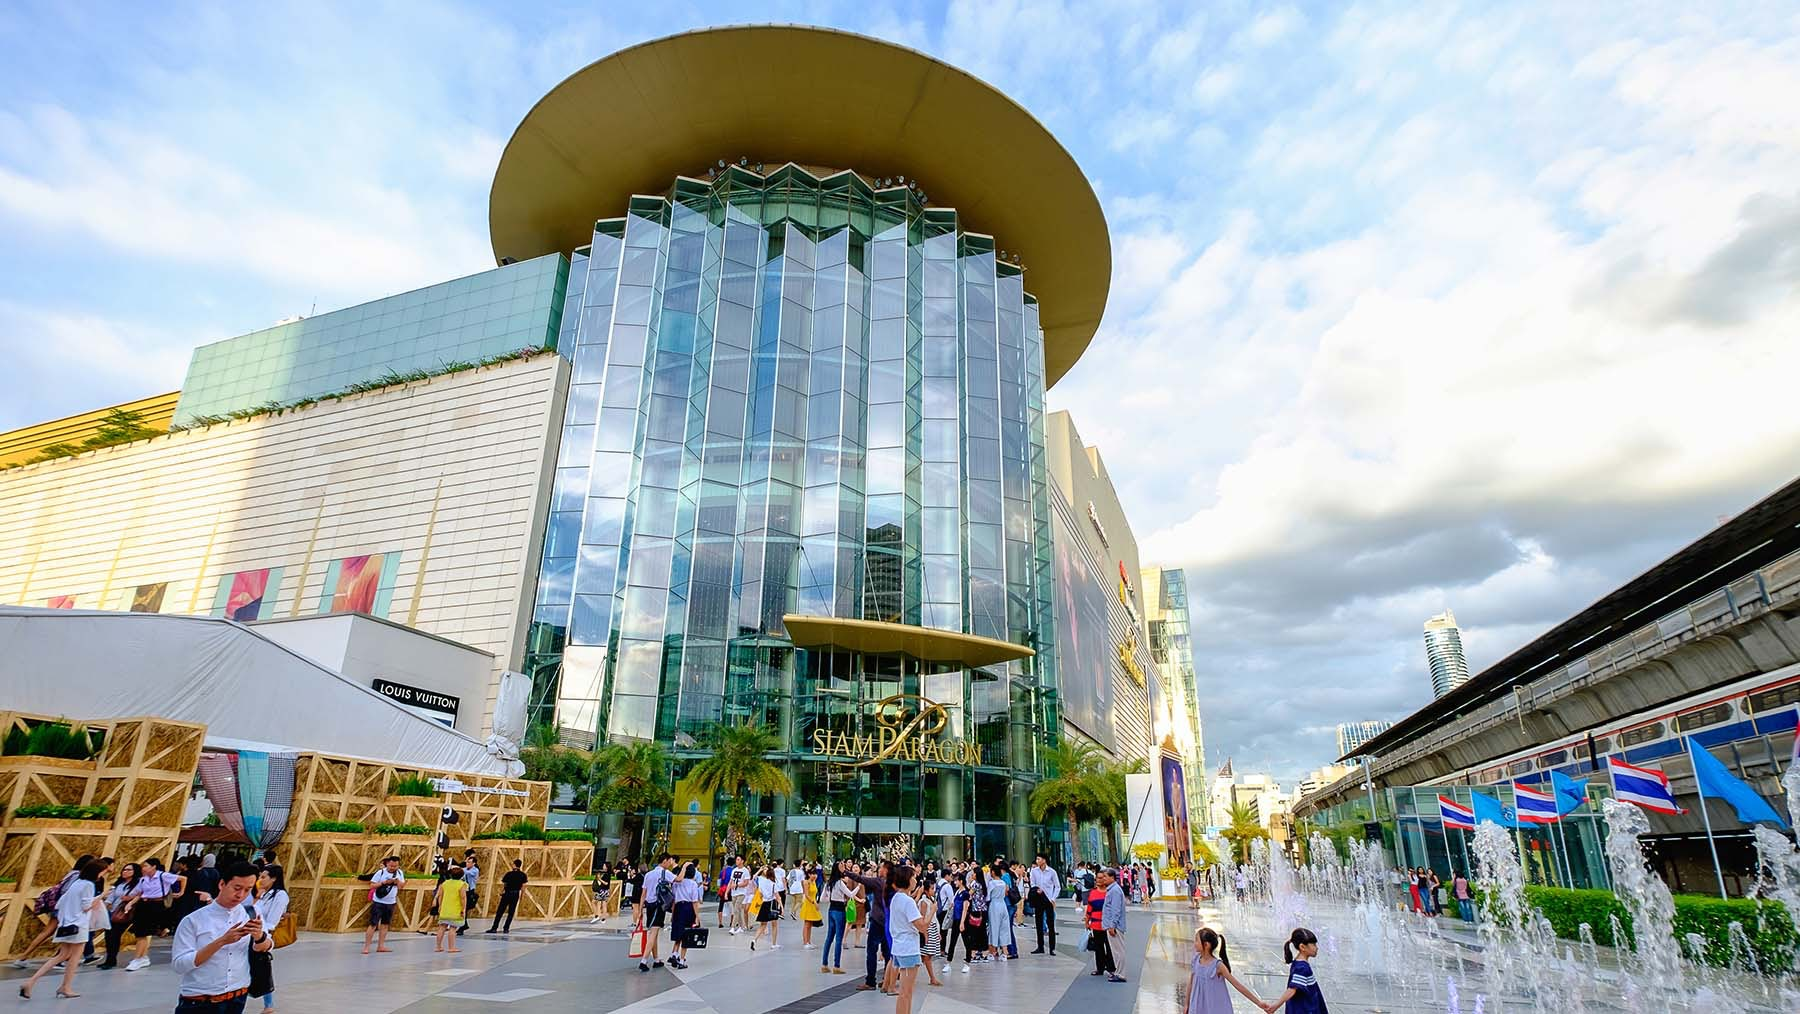 Siam Paragon shopping mall | Source: Shutterstock